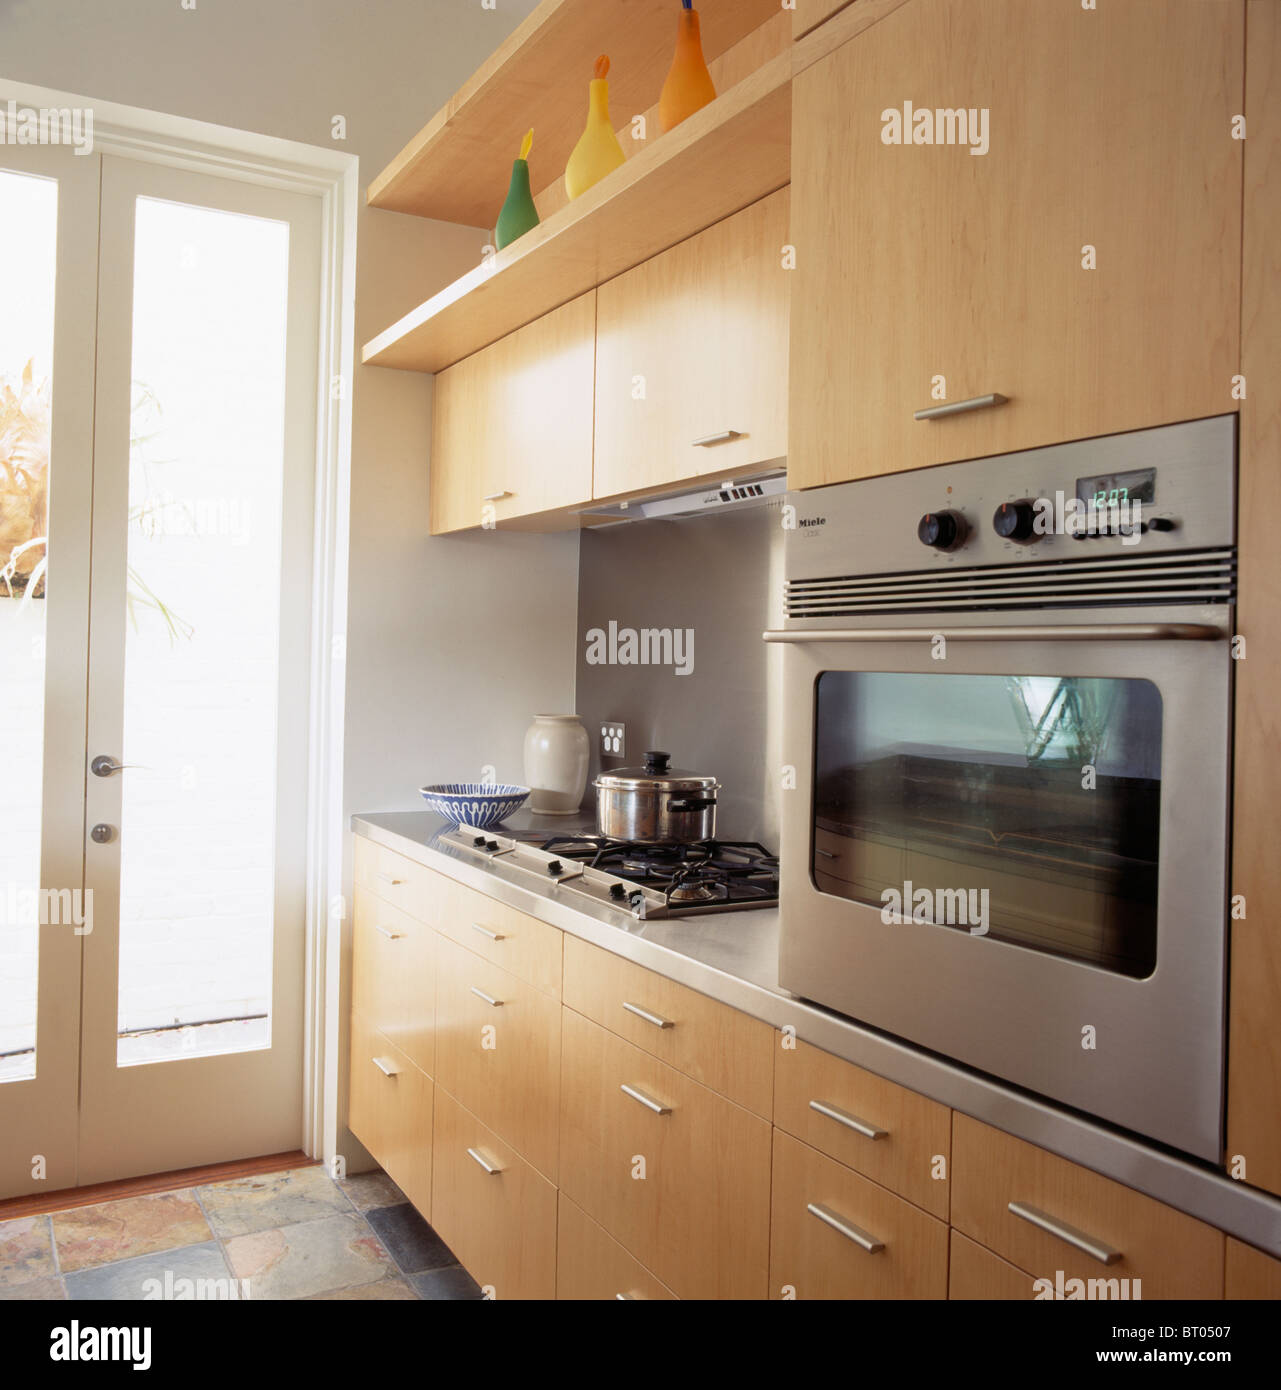 eye level stainless steel oven in pale wood fitted unit in. Black Bedroom Furniture Sets. Home Design Ideas